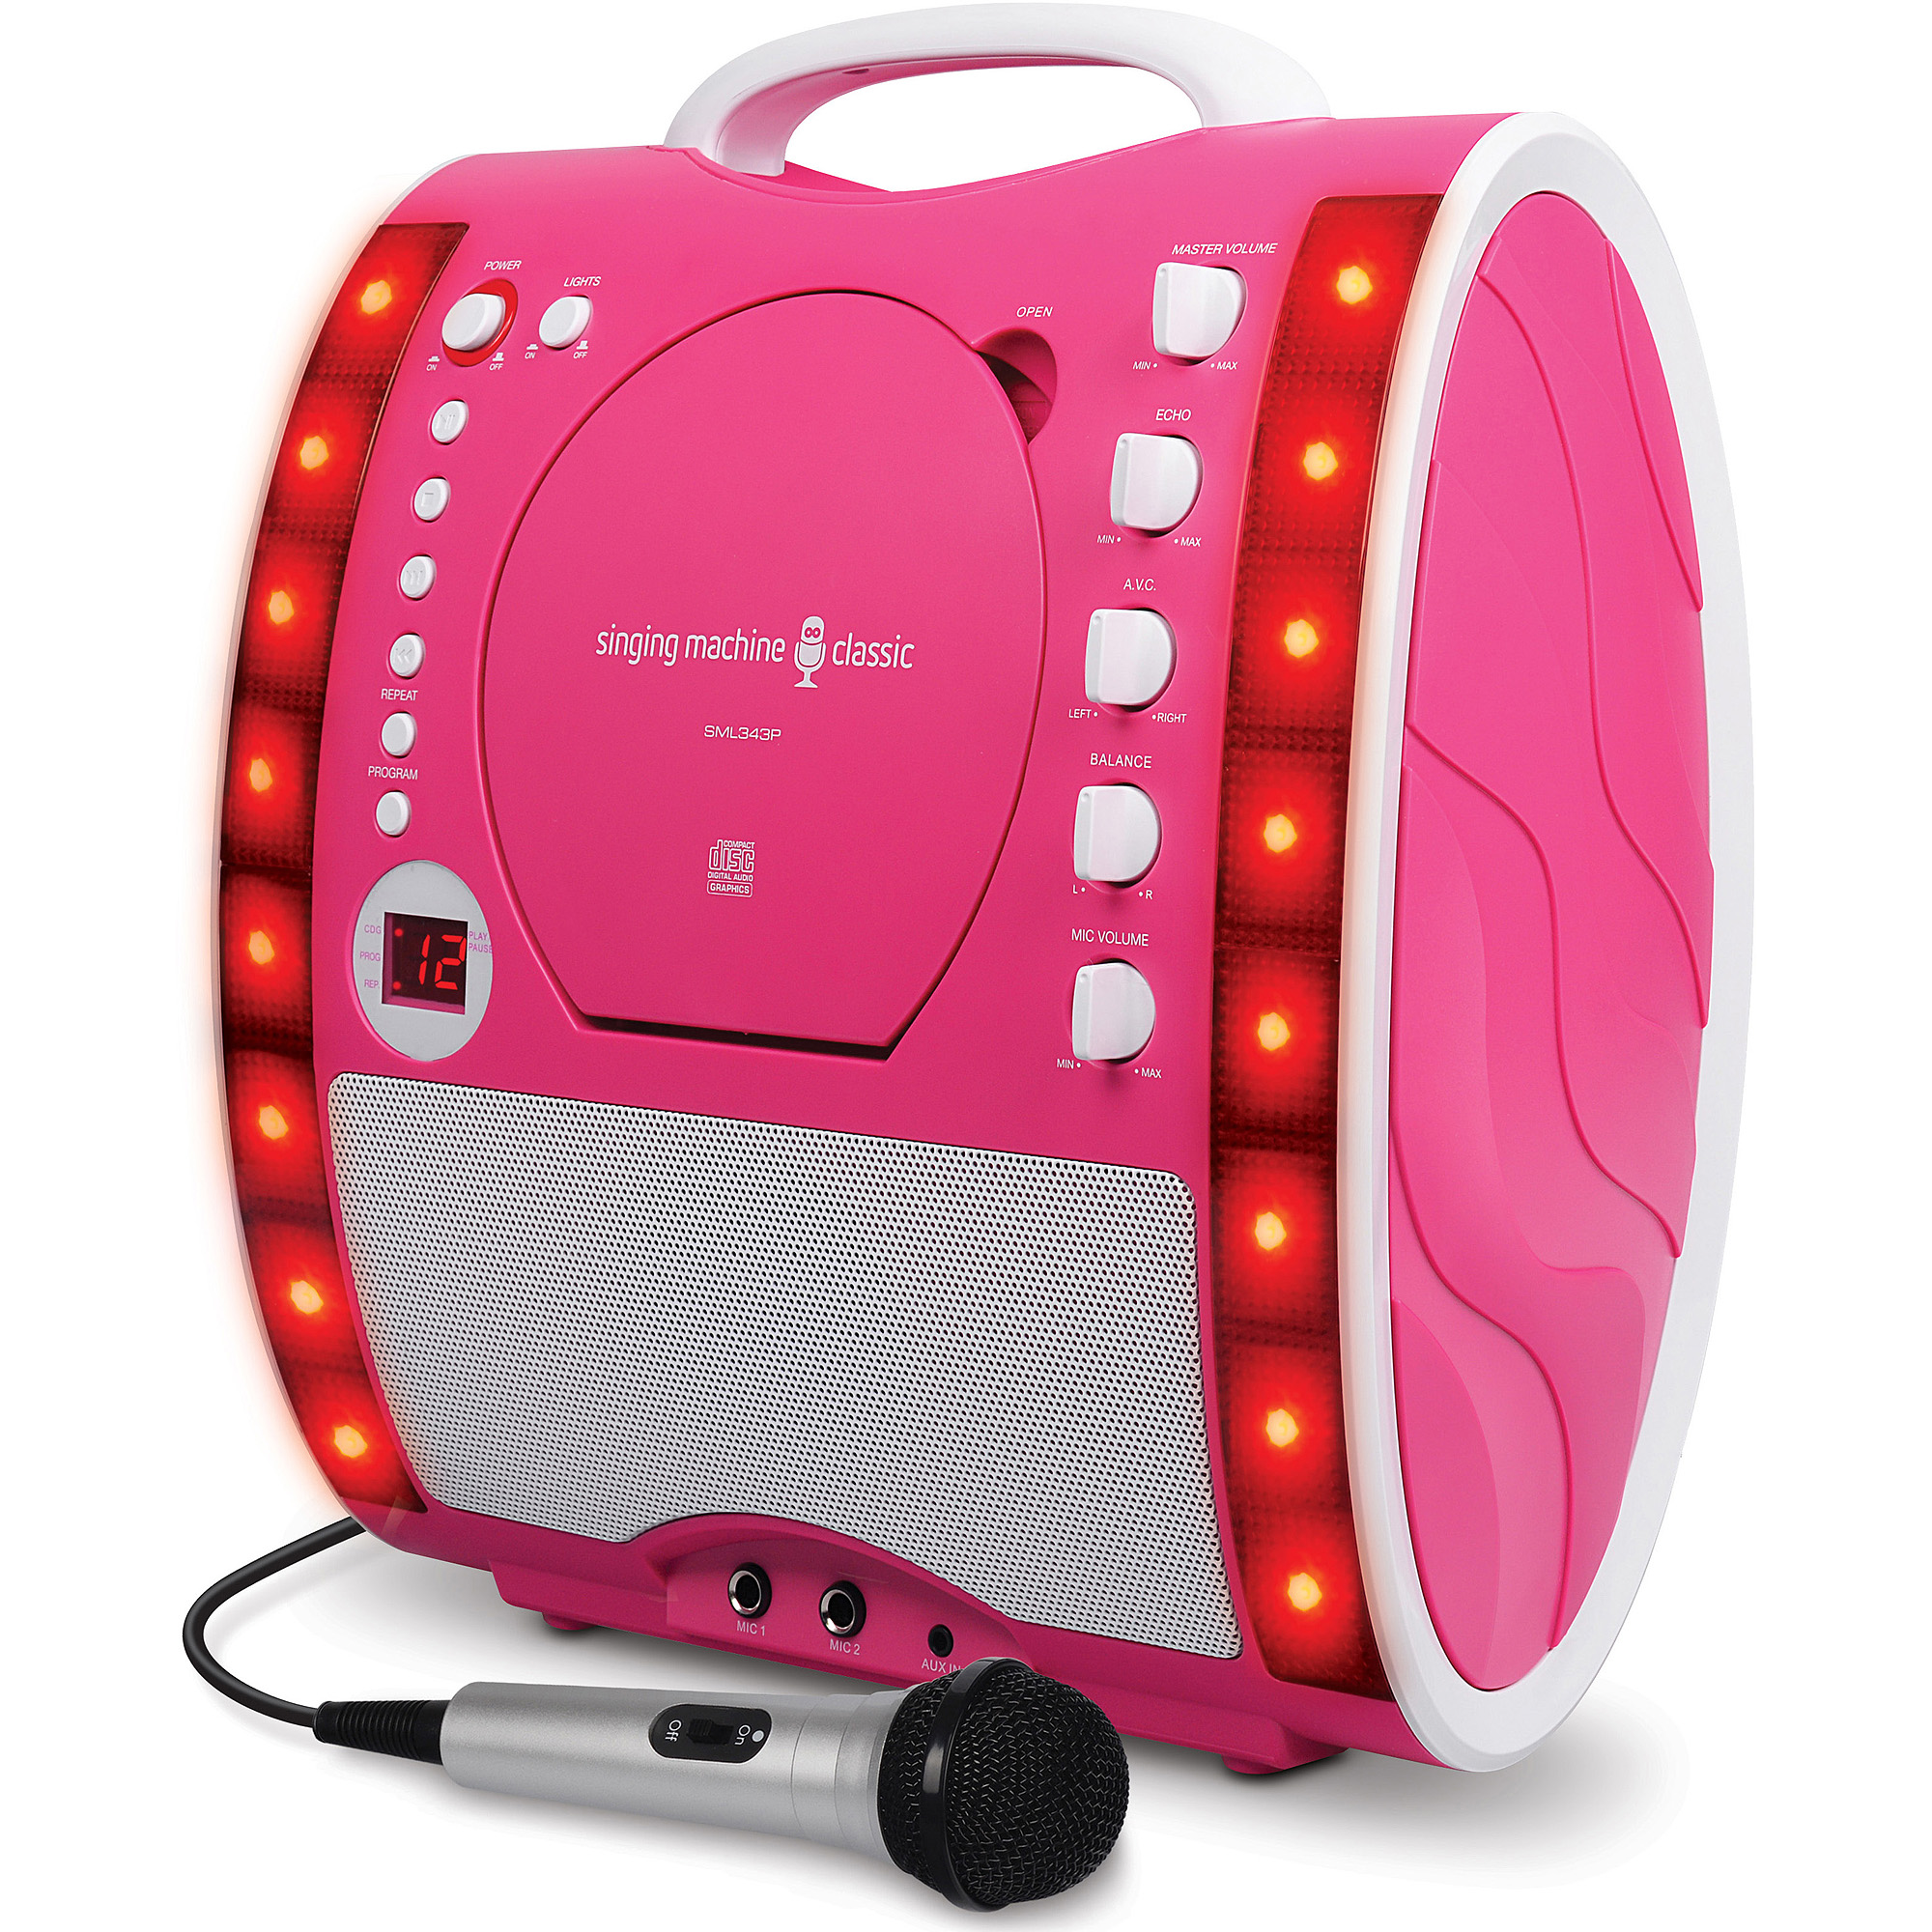 Singing Machine Portable Plug And Play CD G Karaoke System With Microphone Disco Lights Pink